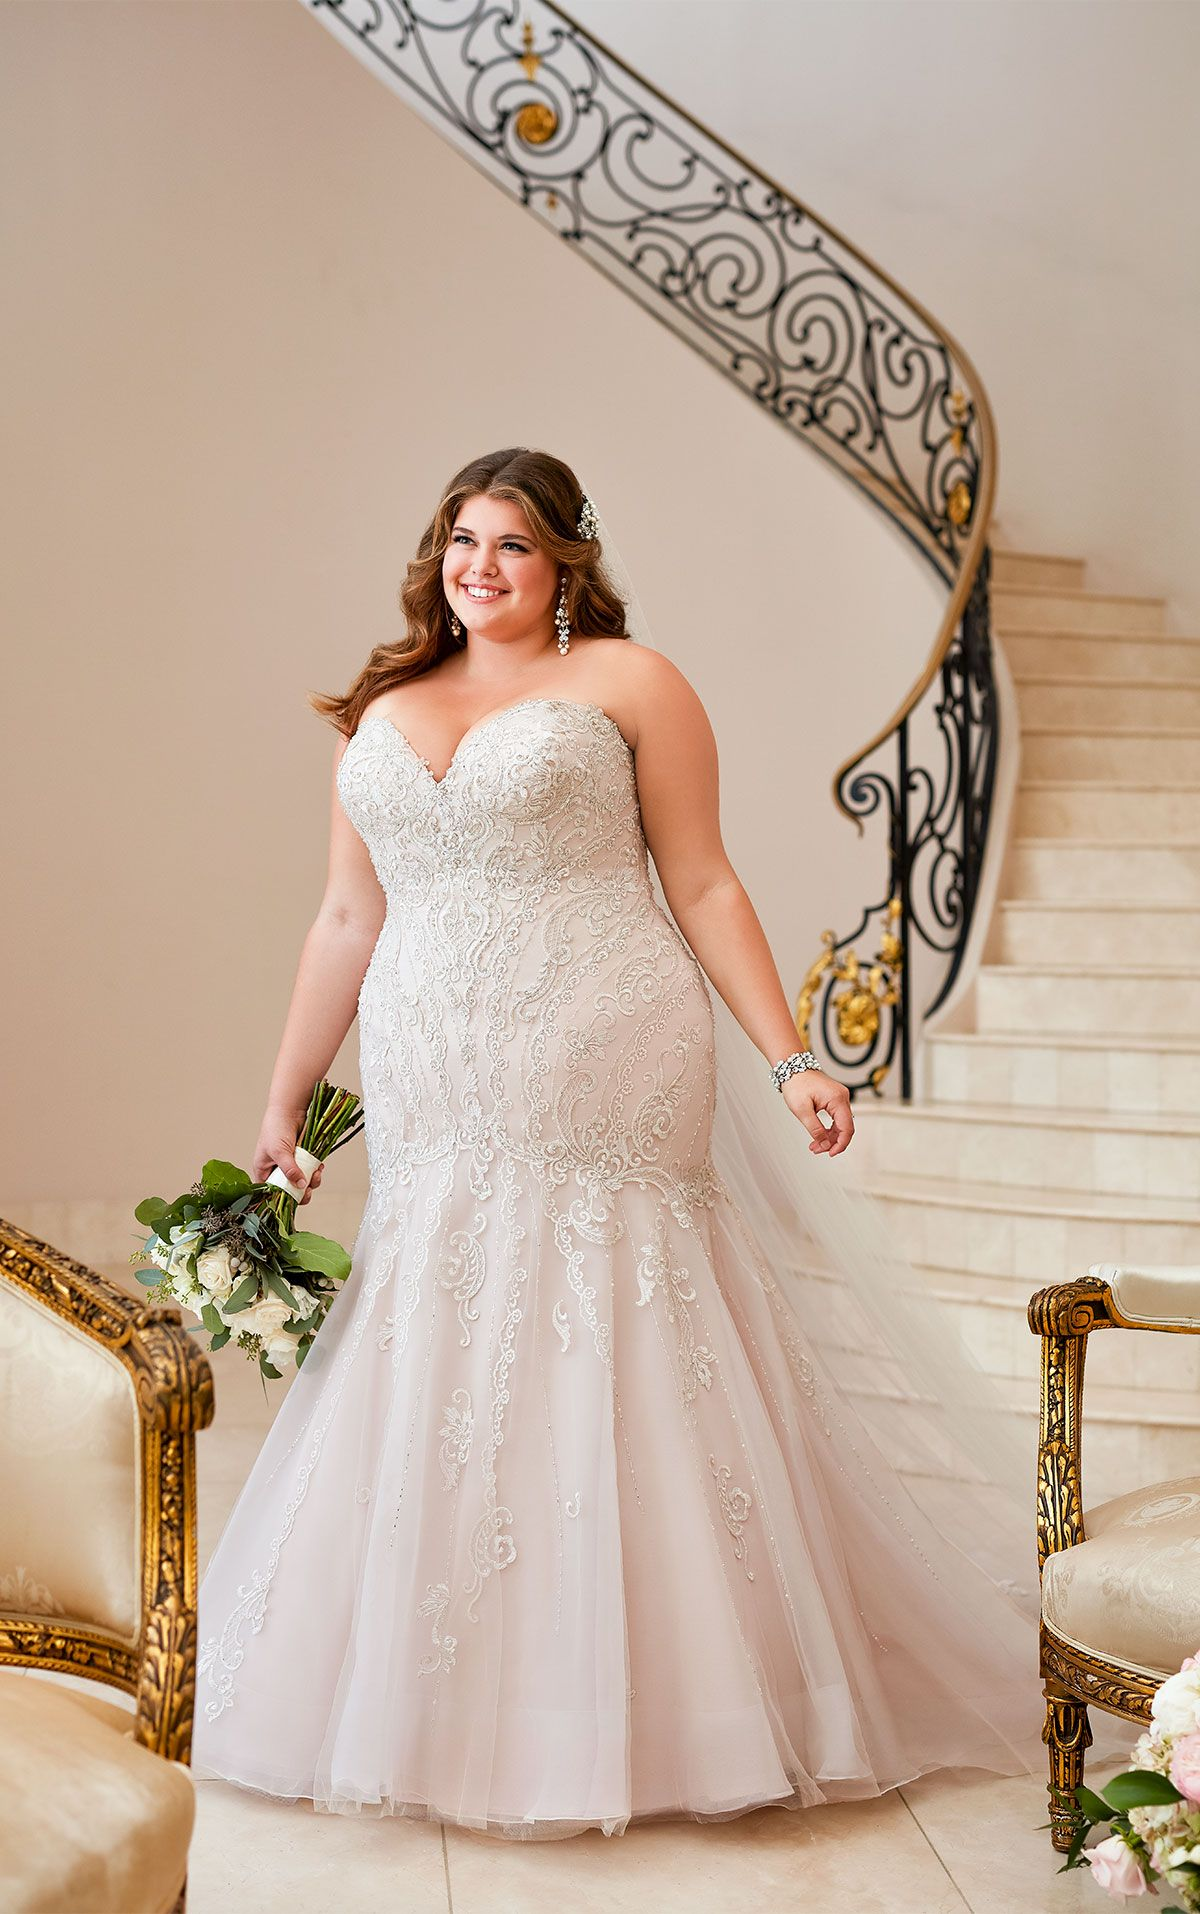 Mermaid Wedding Dress With Glamorous Lace Wedding Dress Trends Plus Wedding Dresses Plus Size Wedding Gowns [ 1914 x 1200 Pixel ]